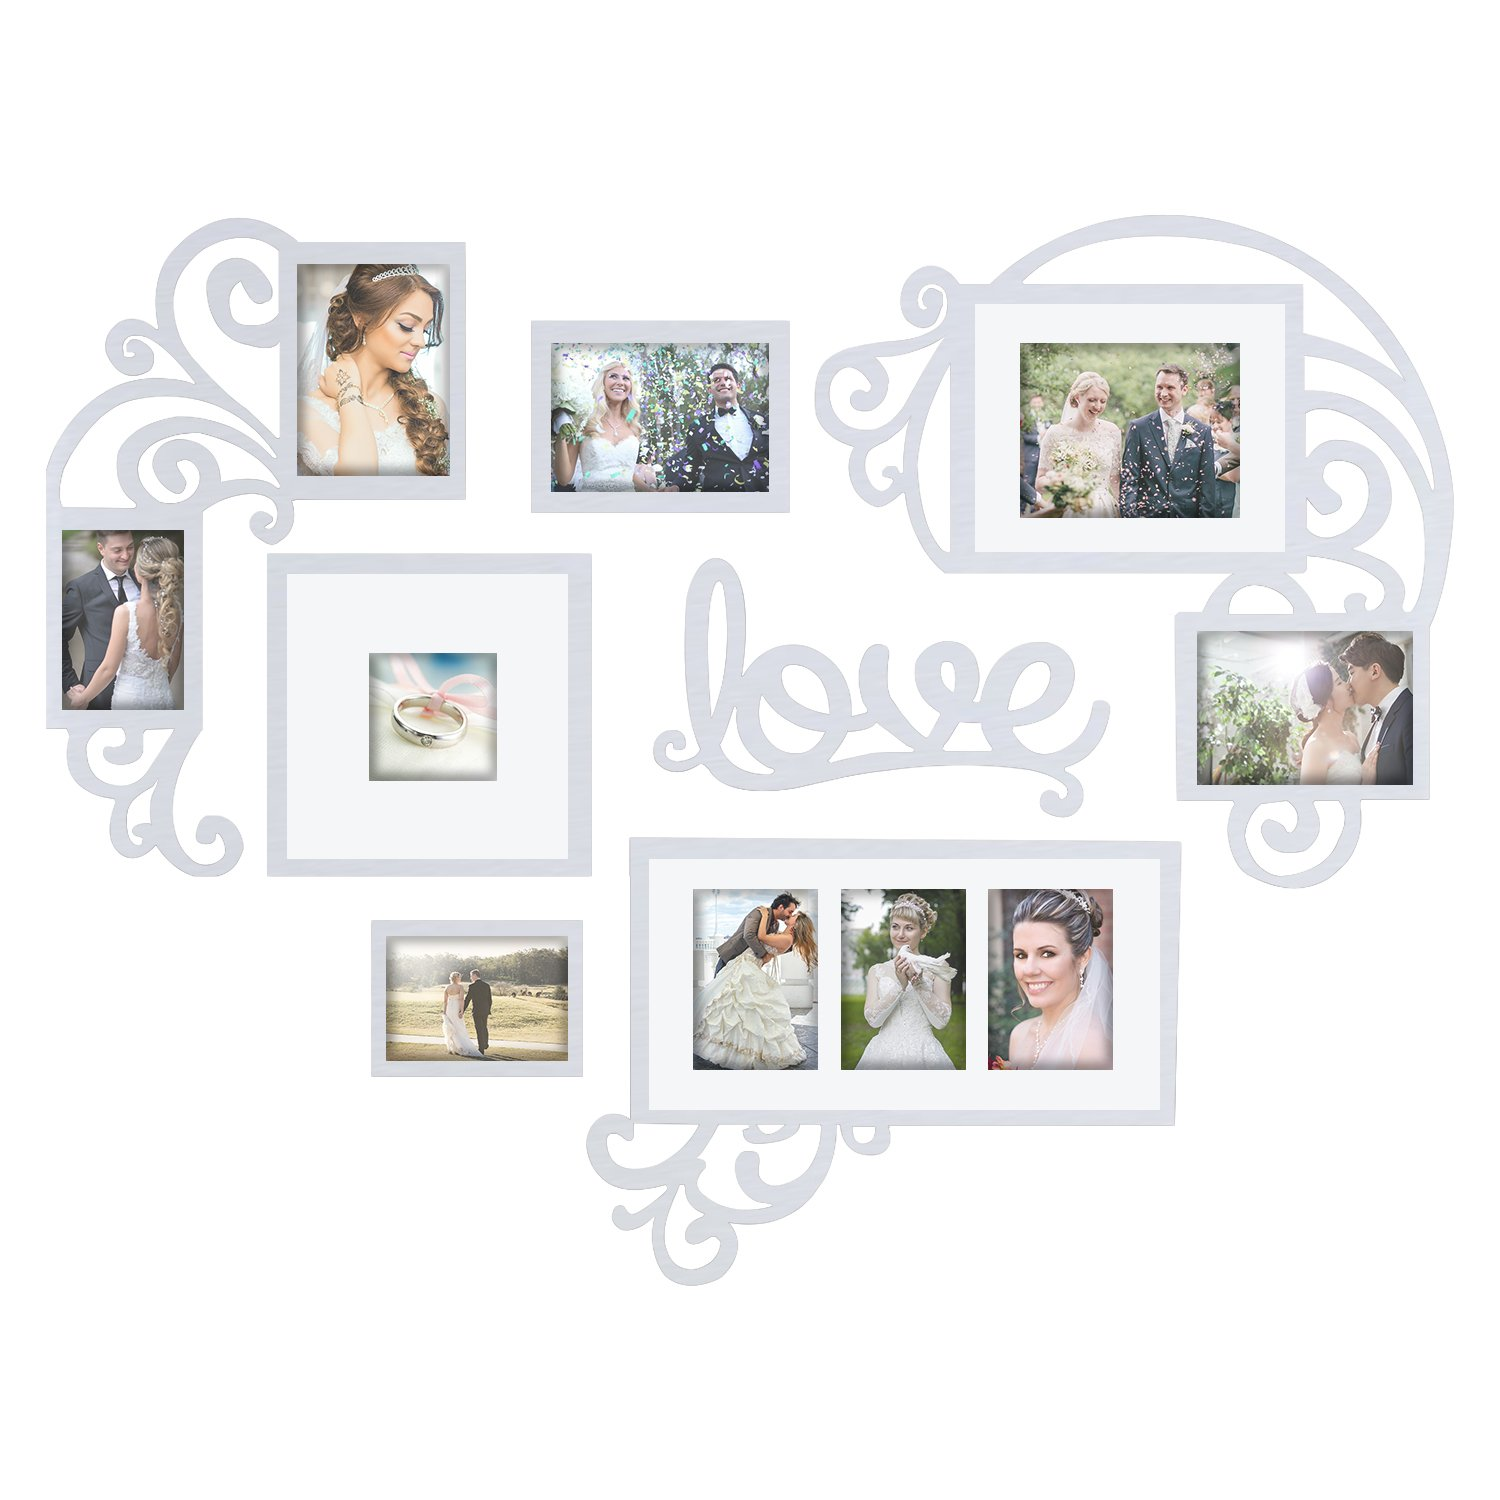 Jerry & Maggie - Photo Frame | Plaque College Frame - Valentine Wall Decoration Combination - White PVC Picture Frame Selfie Gallery Collage W Wall Hanging Mounting Design | Love Heart Shape